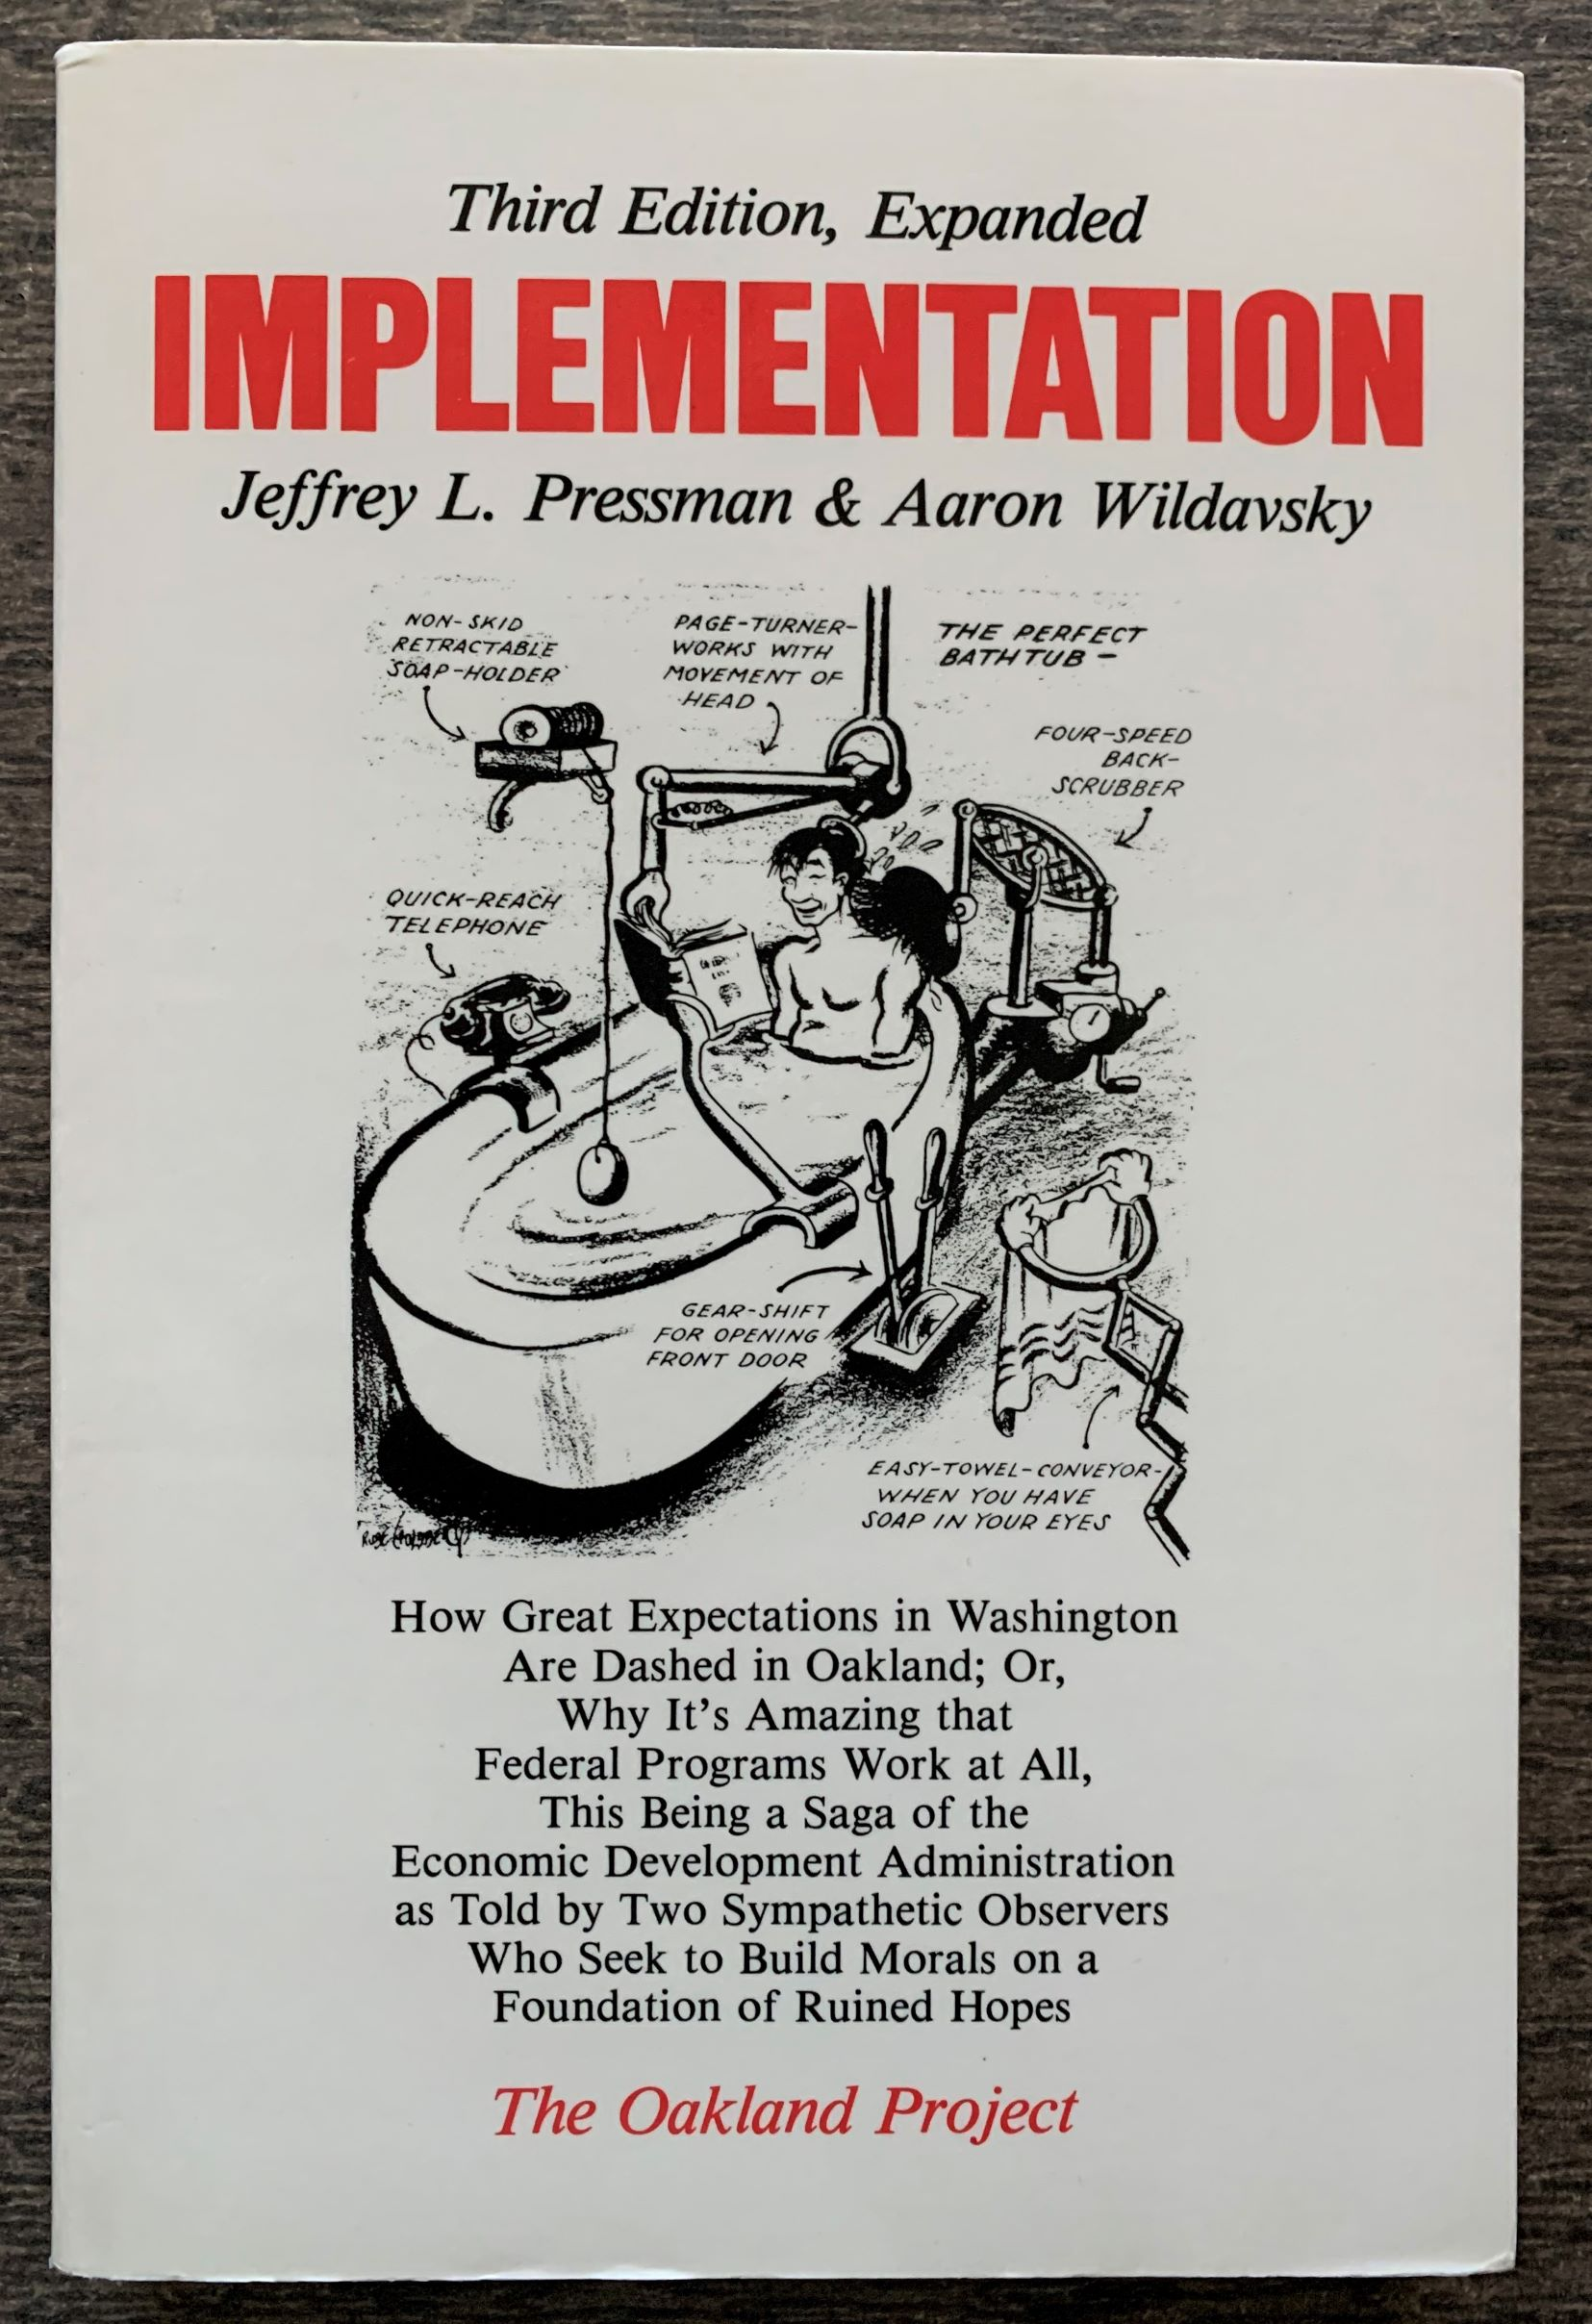 Image for Implementation: How Great Expectations in Washington Are Dashed in Oakland; Or, Why It's Amazing that Federal Programs Work at All, This Being a Saga of the Economic Development Adminsitration as told by two sympathetic Observers, who seek to build Morals on a Foundation (Oakland Project).